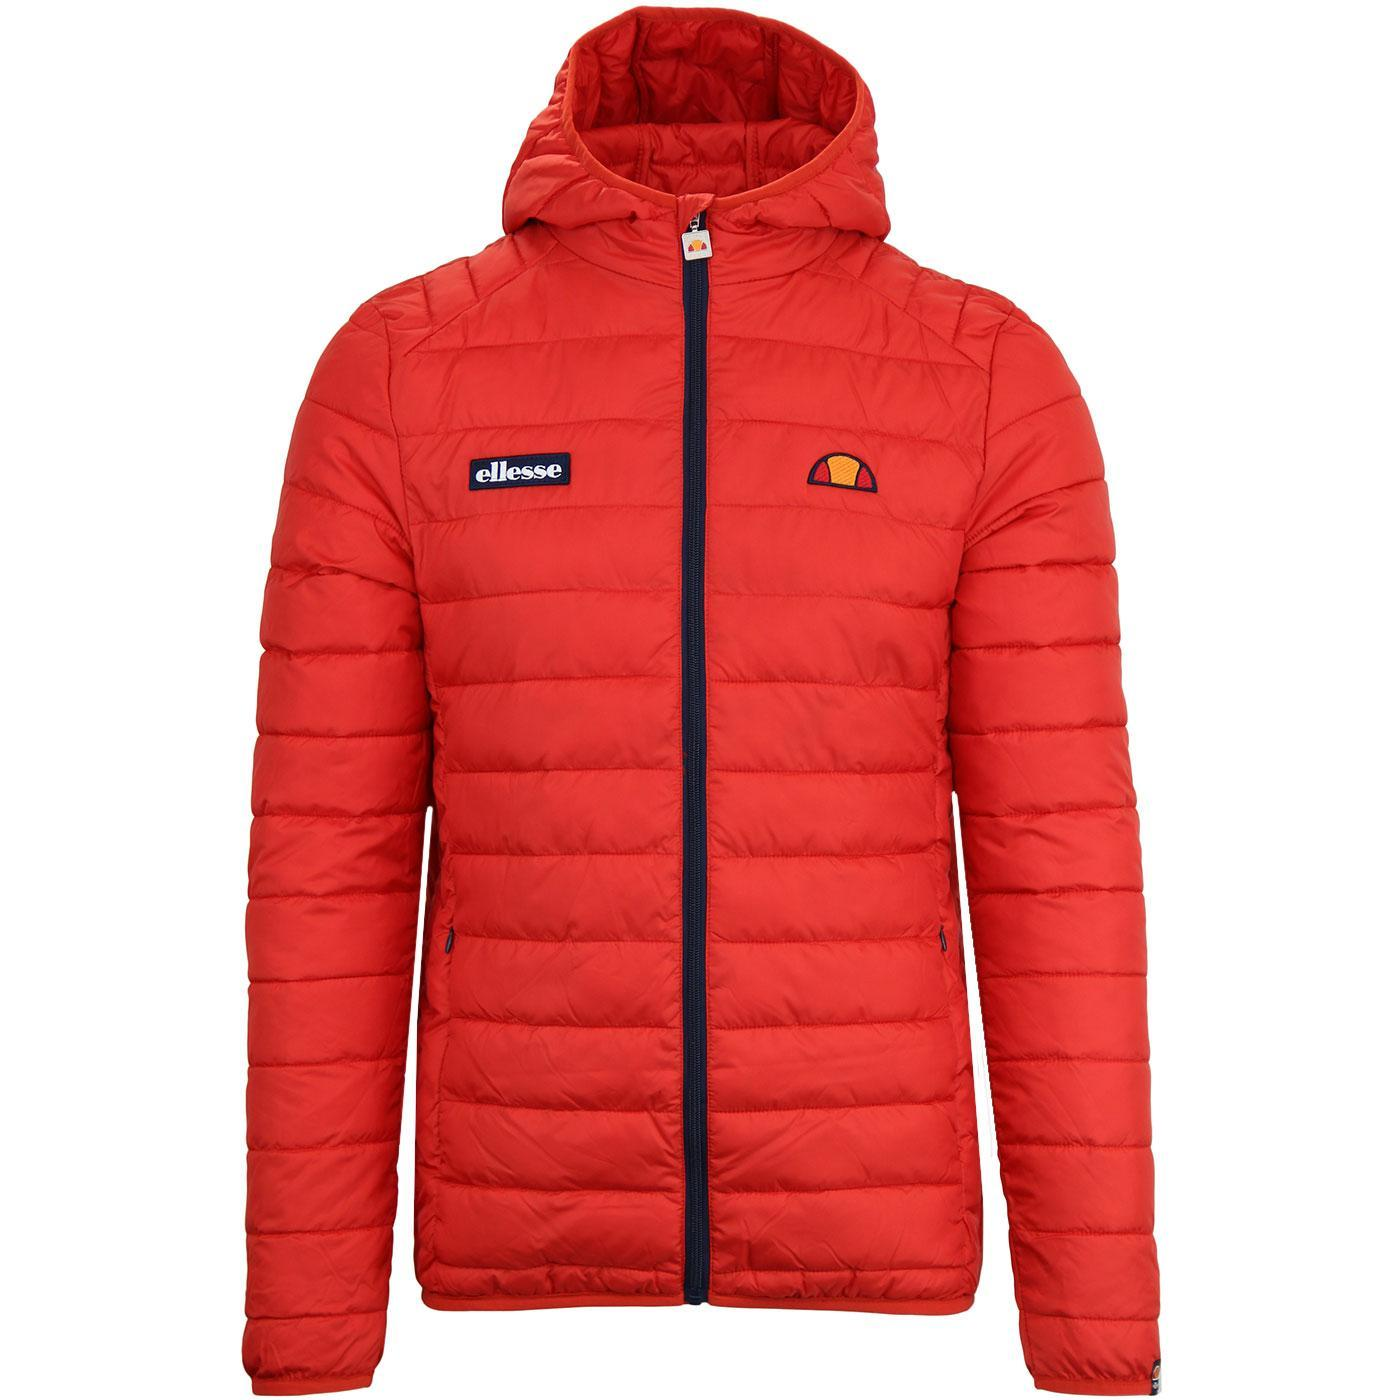 Lombardy ELLESSE Retro Mens Quilted Ski Jacket (S)